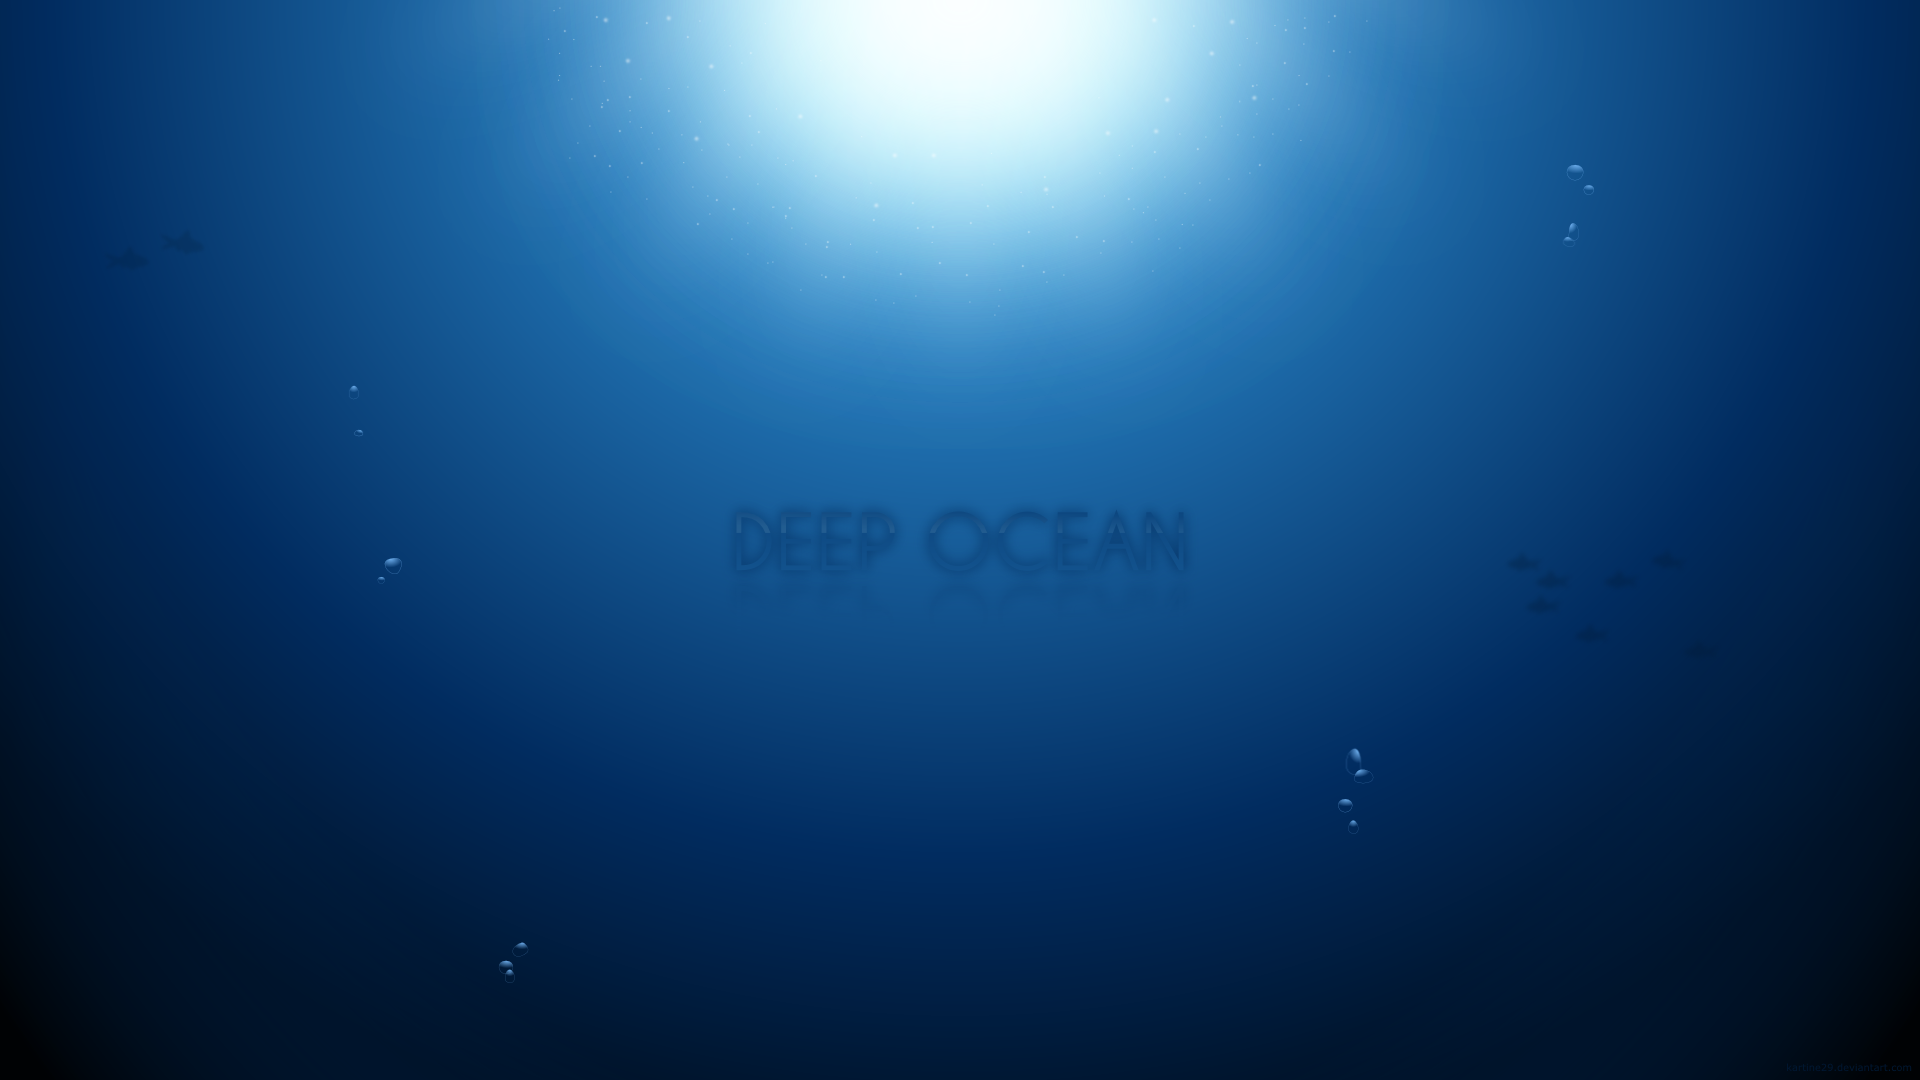 Deep Ocean Full HD by kartine29